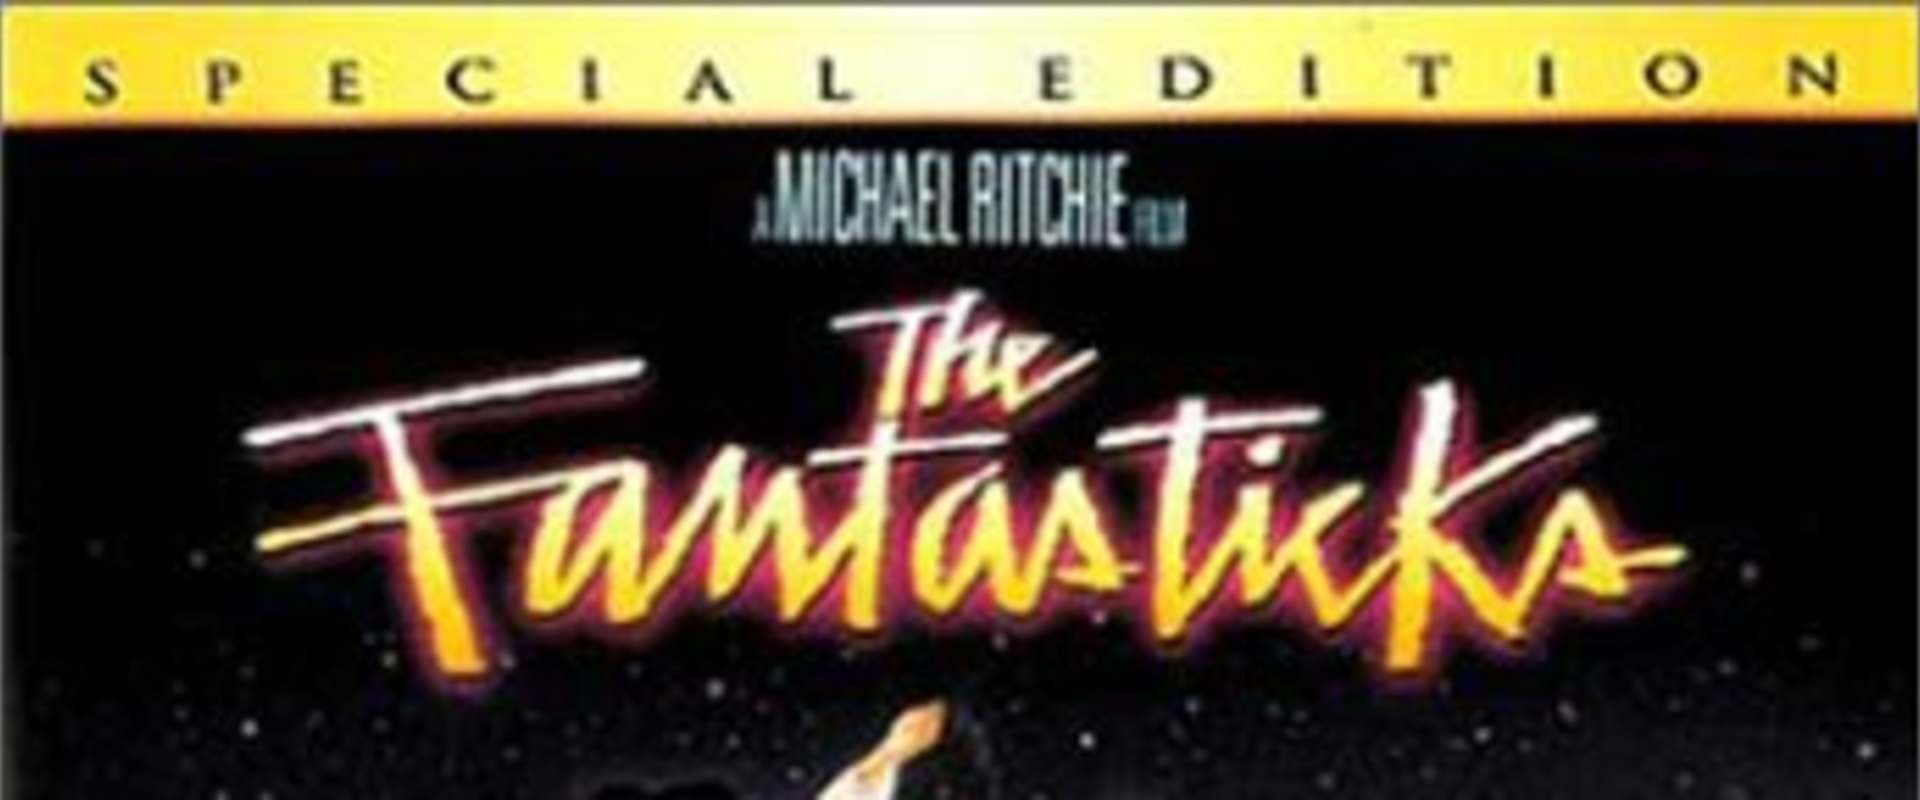 The Fantasticks background 1